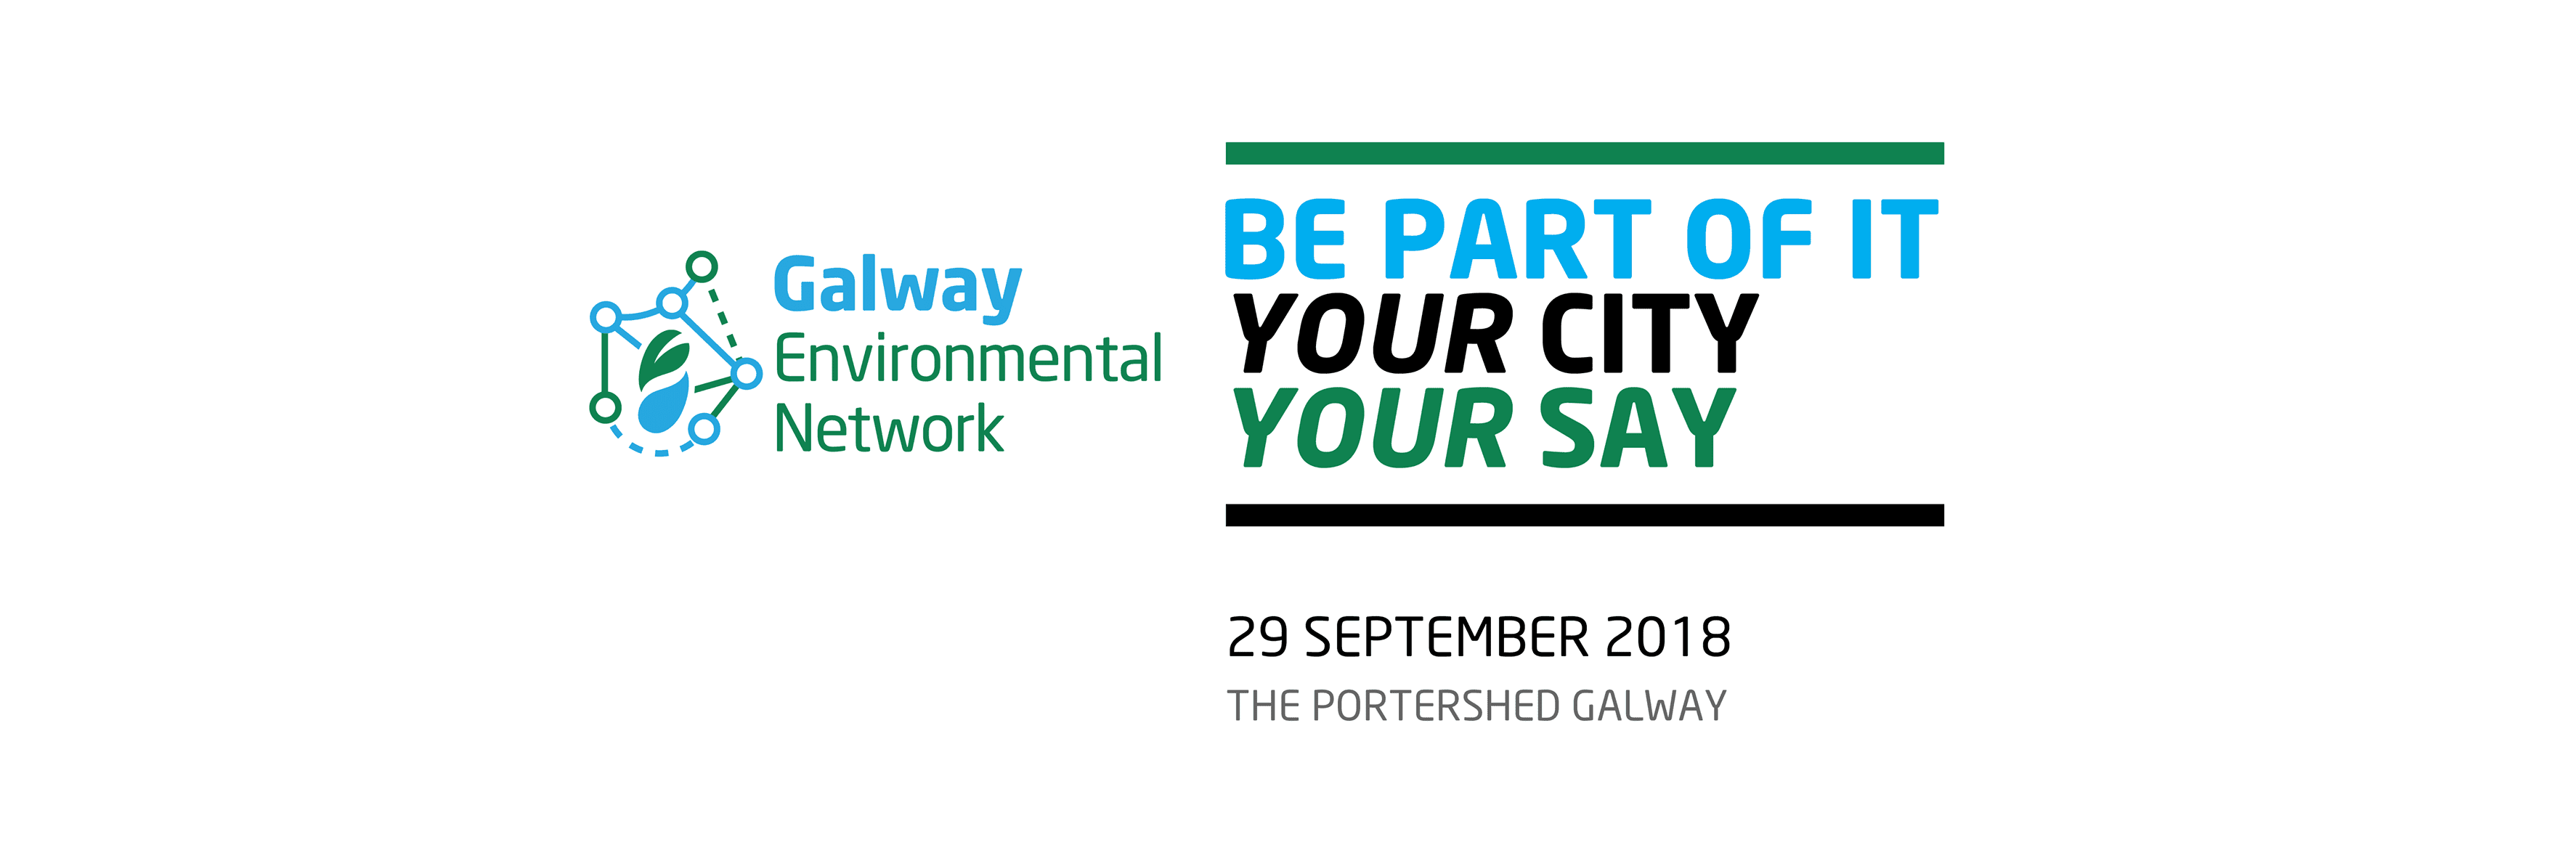 Your City, Your Say workshop this Saturday